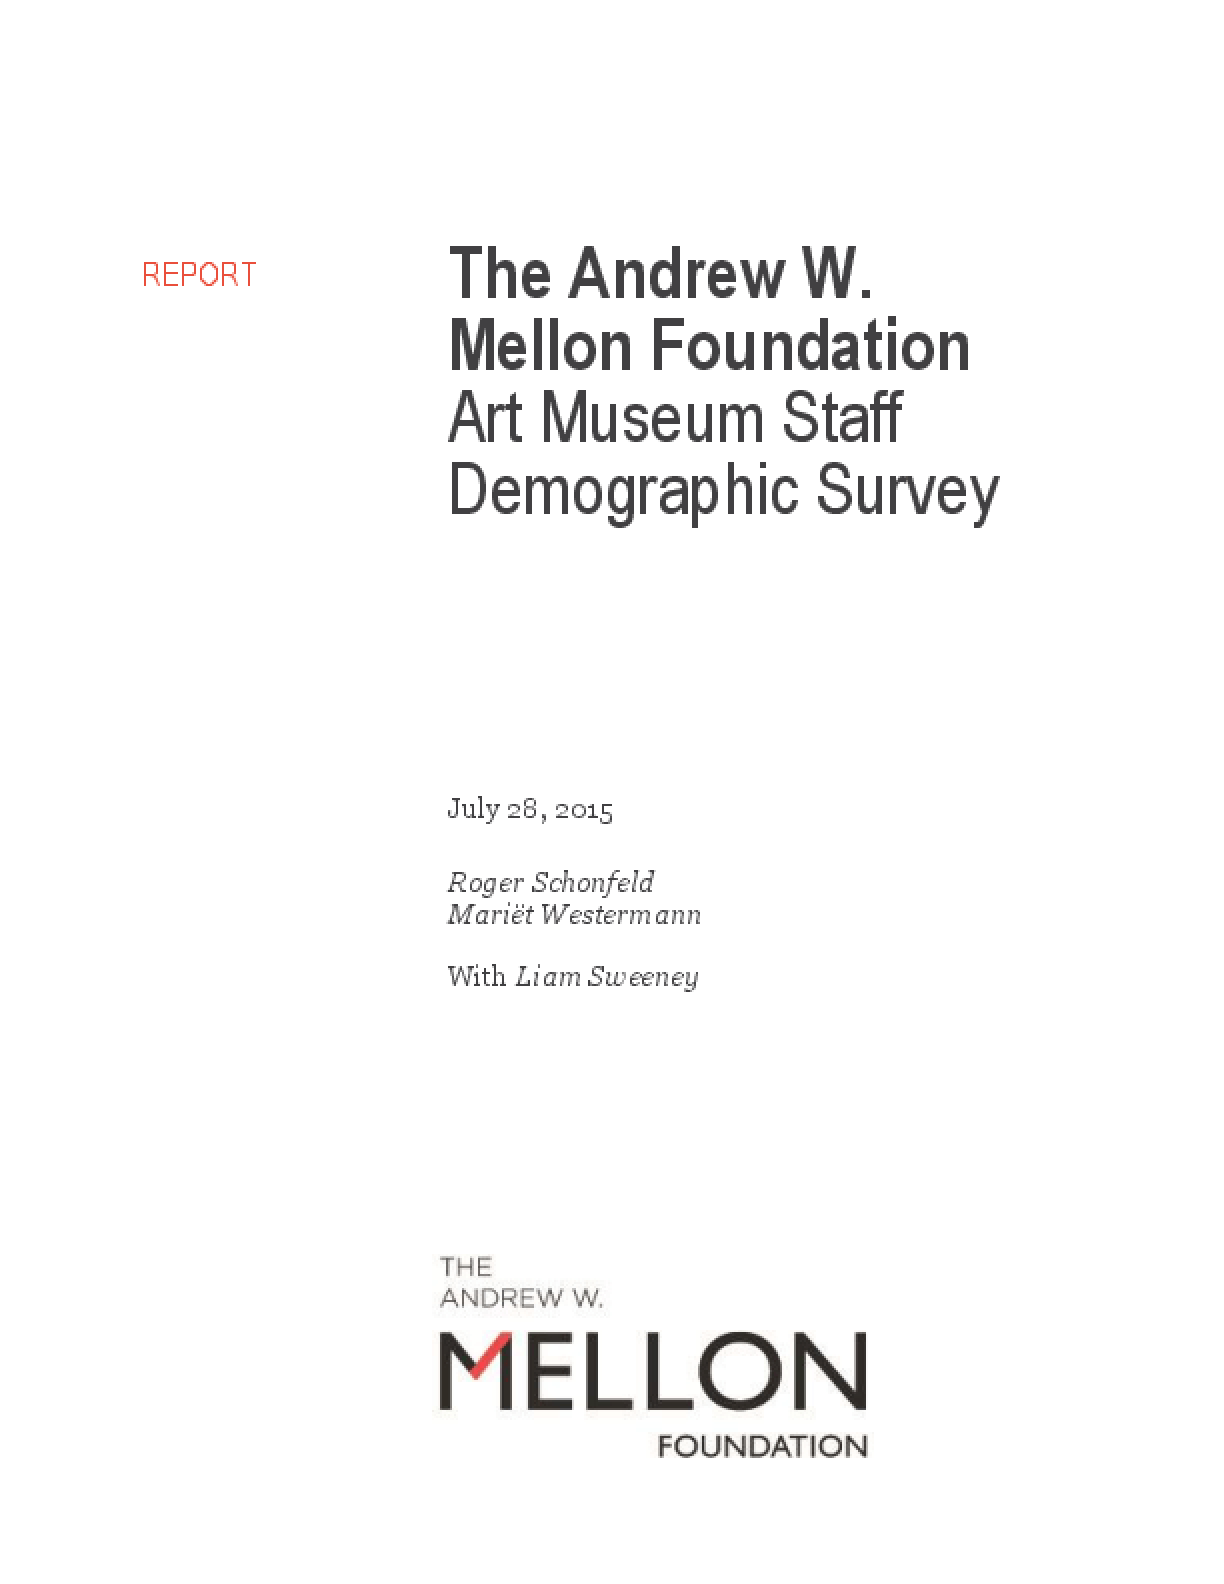 The Andrew W. Mellon Foundation Art Museum Staff Demographic Survey